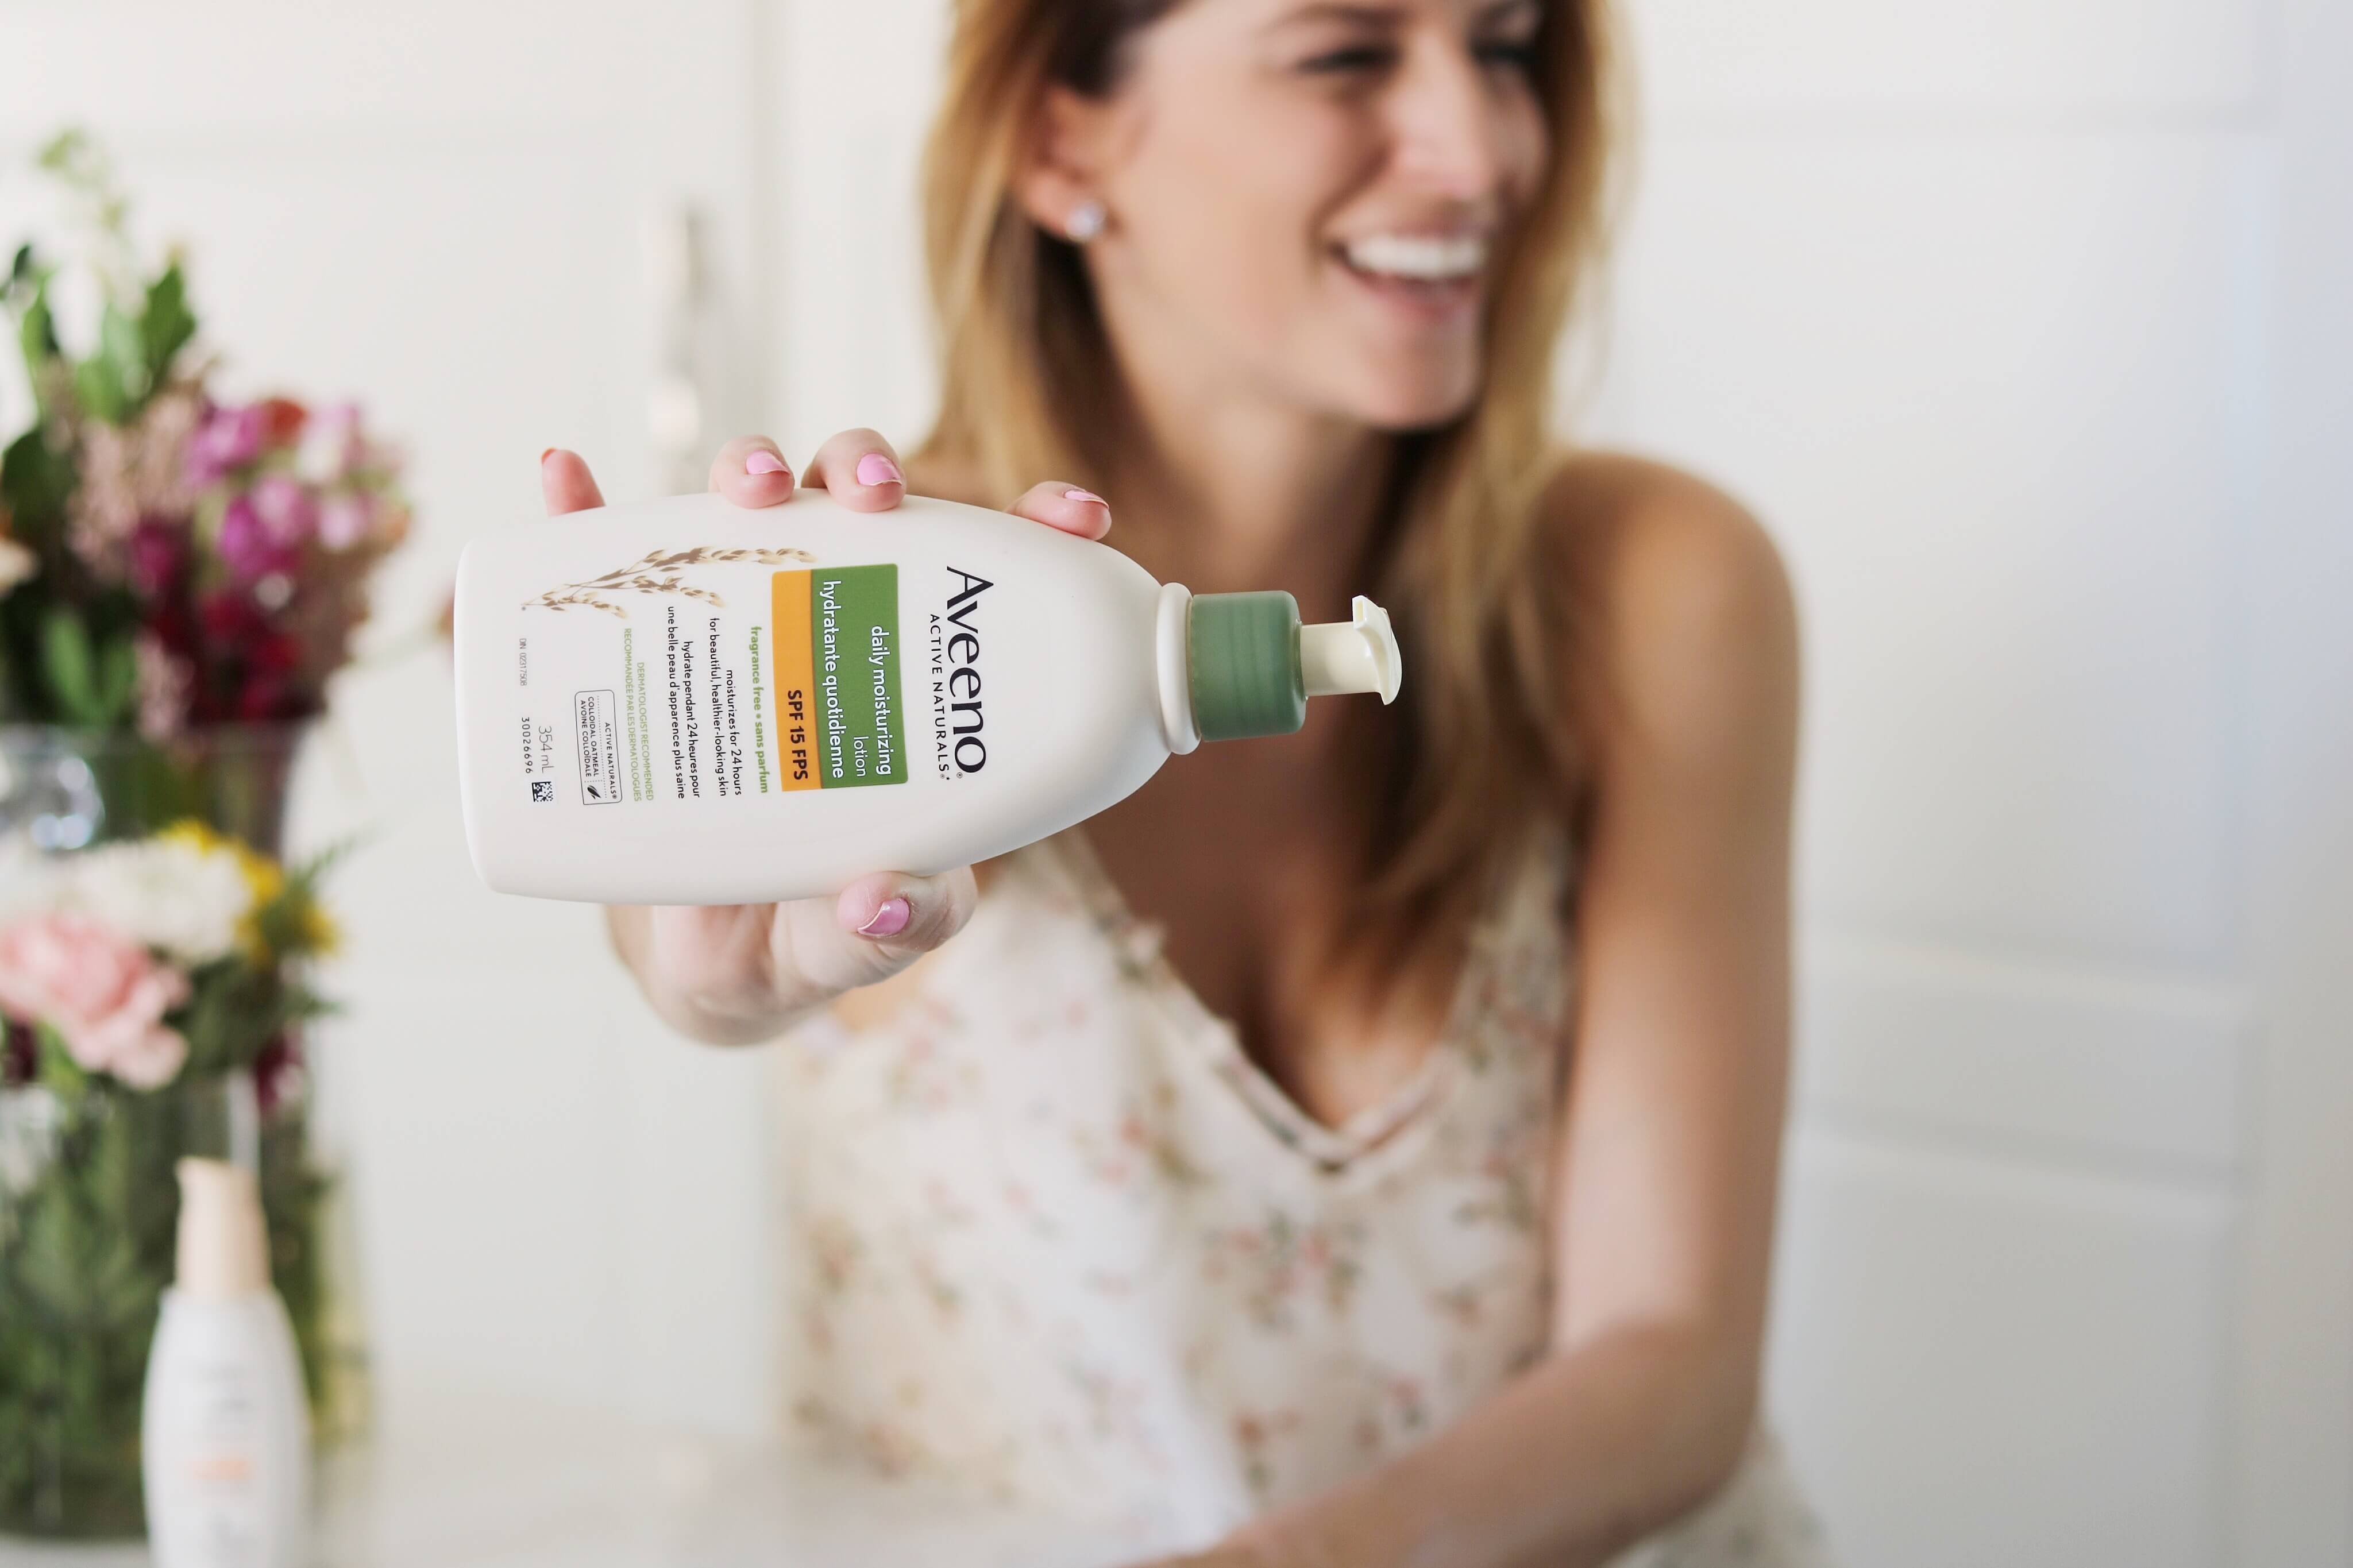 review of NEW AVEENO® ULTRA-CALMING® Daily Moisturizer Mineral SPF 30 sparkleshinylove mandy furnis